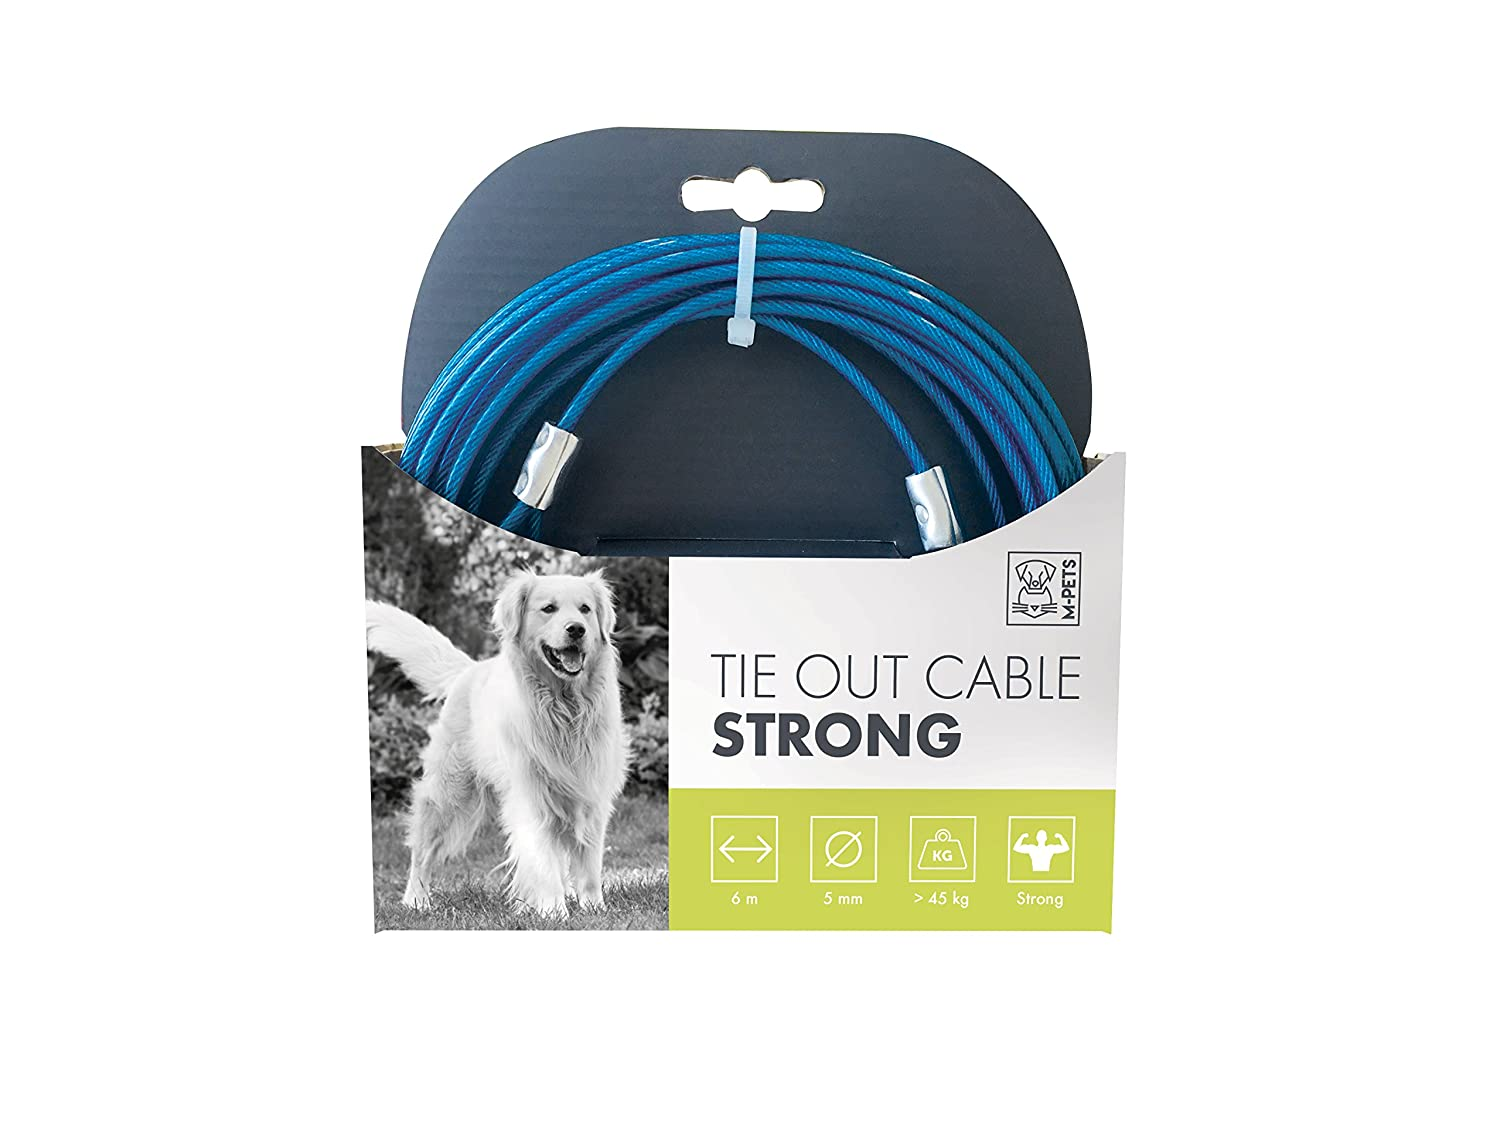 MPETS 10800299 Câble d'attache Strong pour Chien - Lot de 2